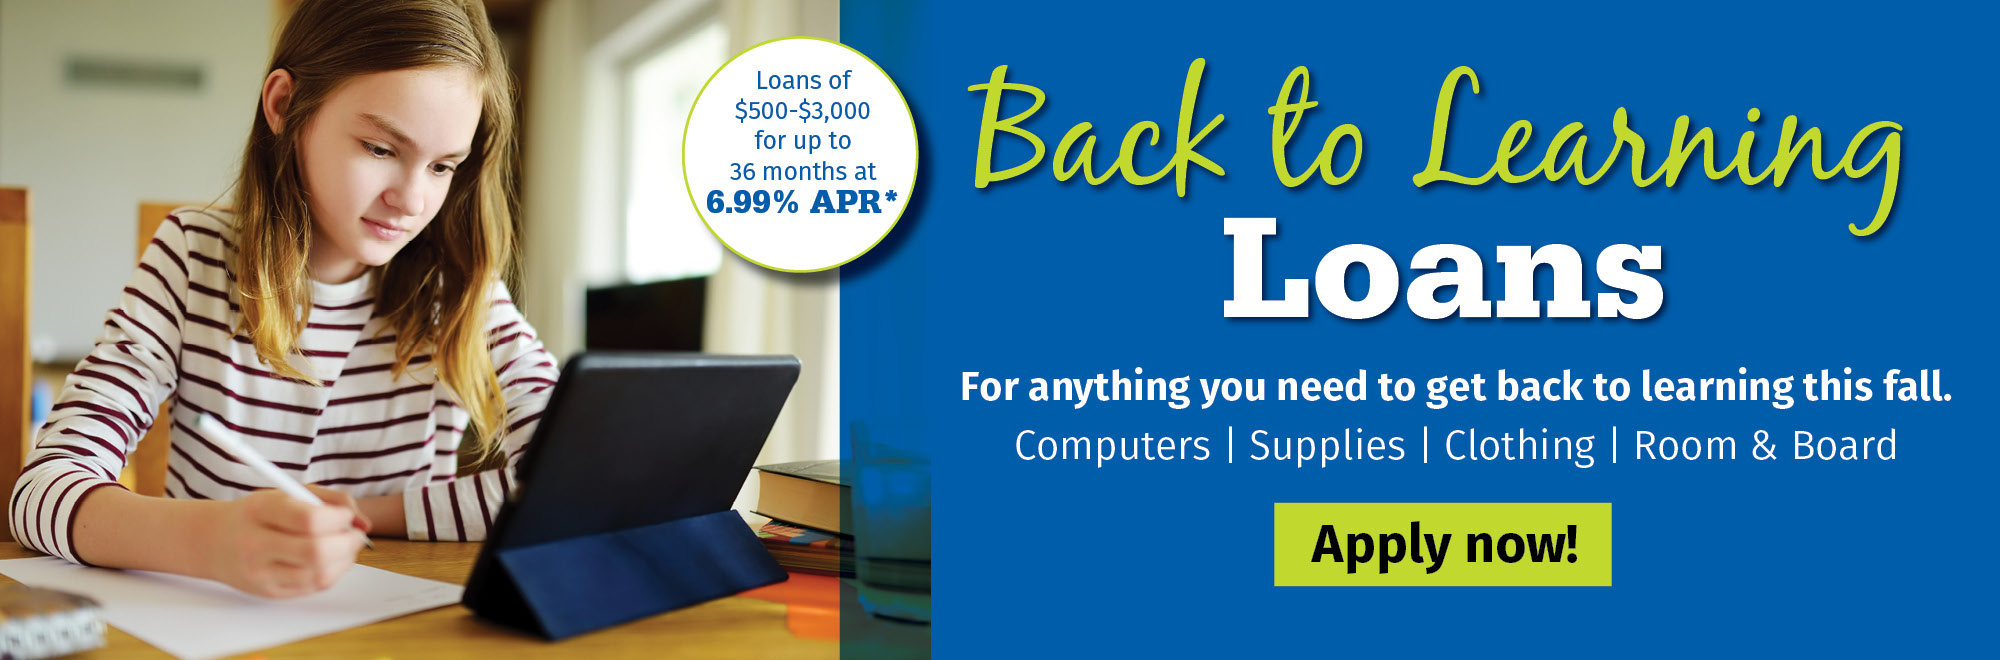 Take advantage of our back to learning loans